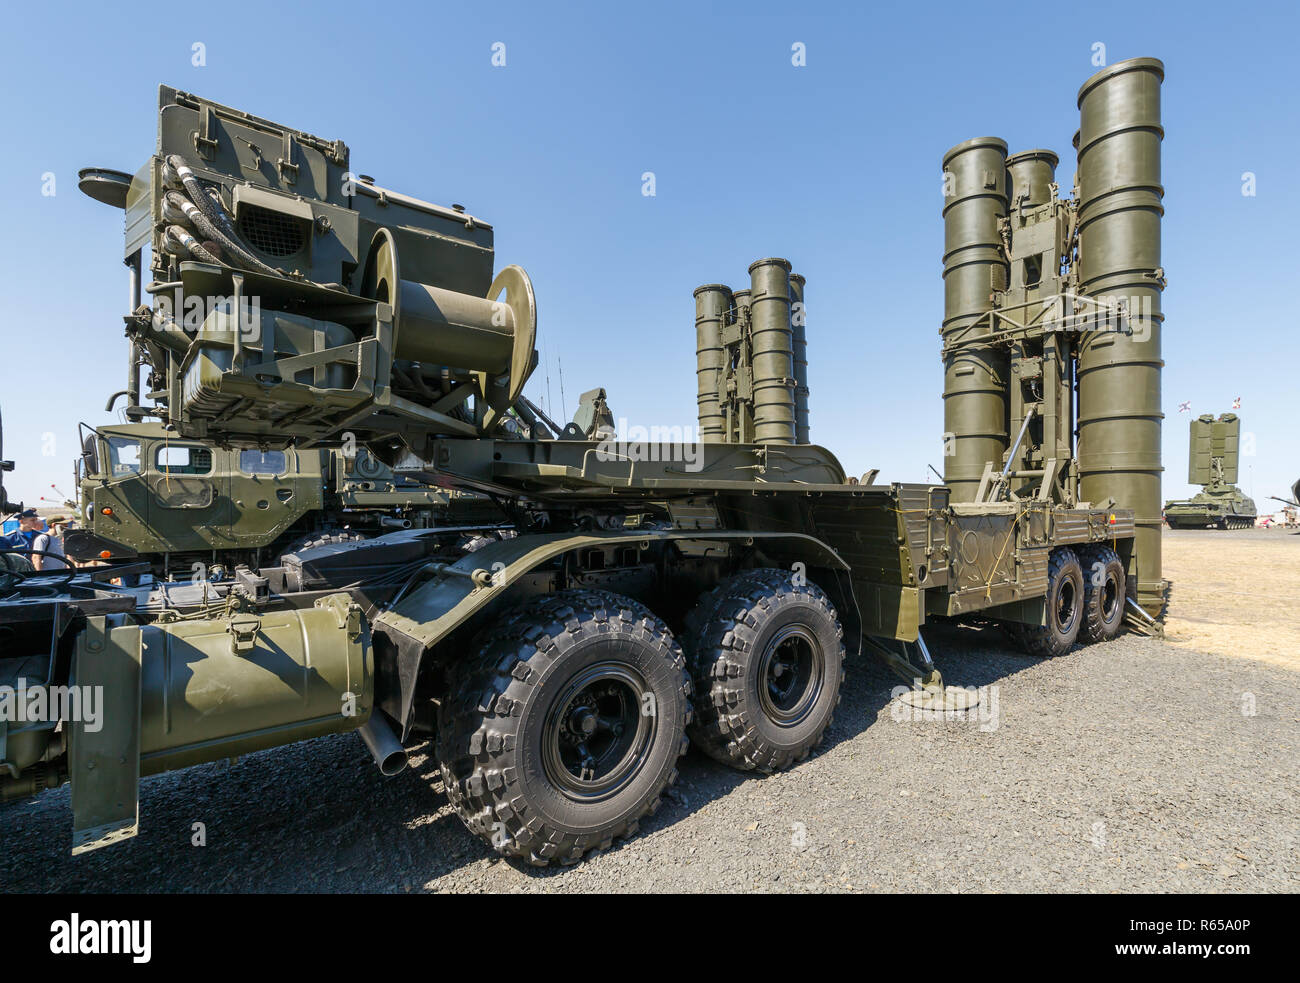 International military technical forum ARMY-2018. Launcher of the Russian anti-aircraft missile system S-400 Triumph - Stock Image